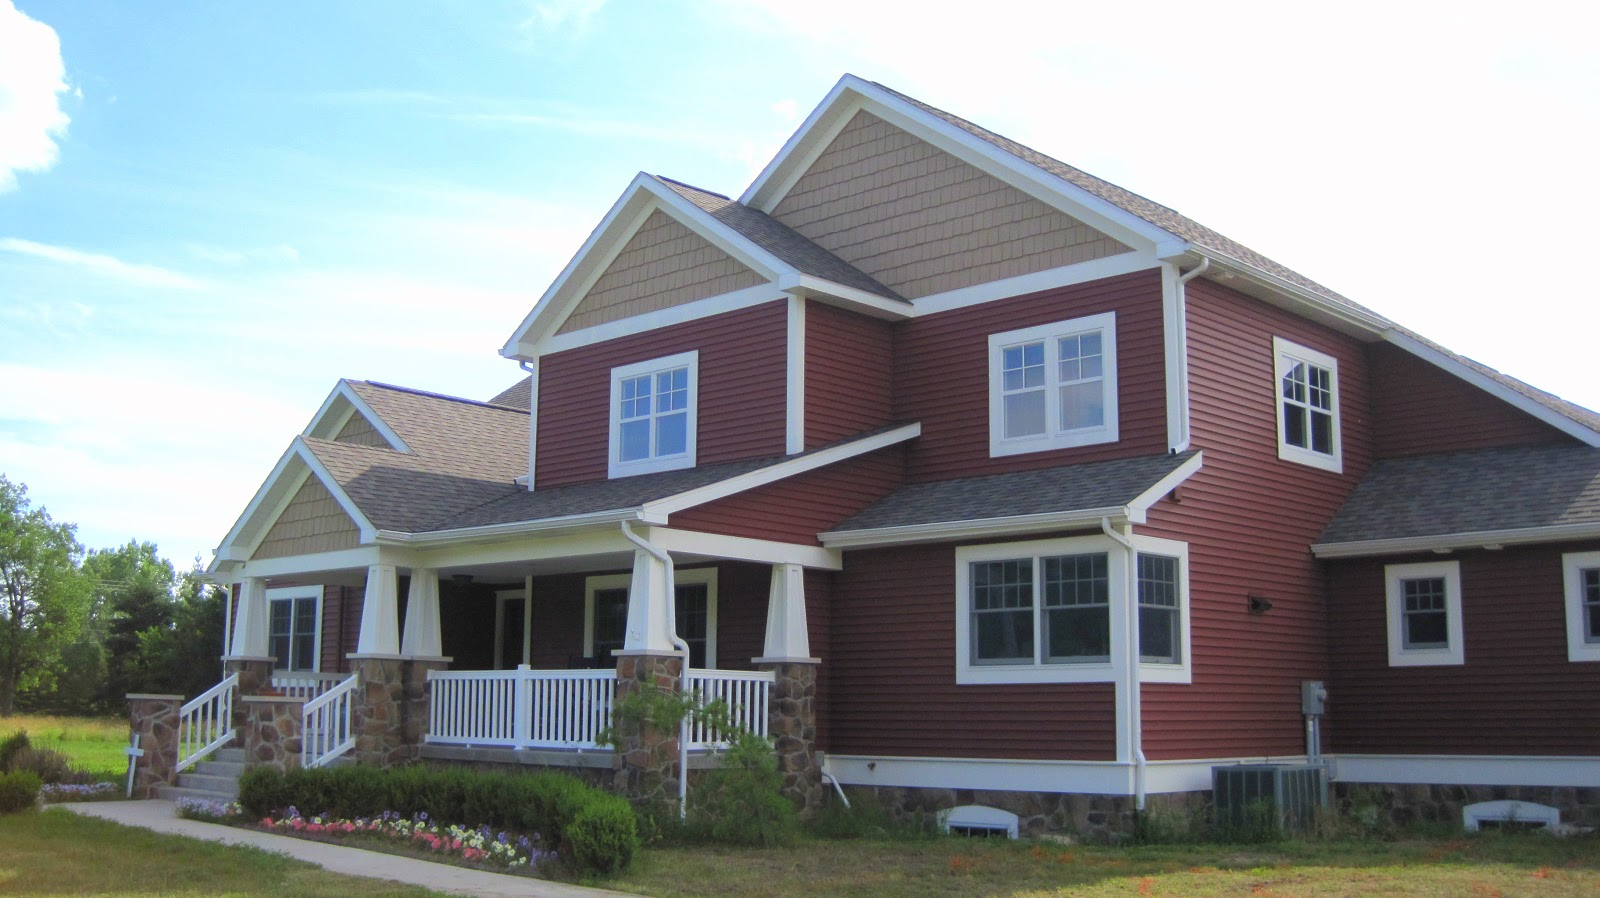 Lp smartside prefinished from lake states in lx pro khaki for Different exterior house styles